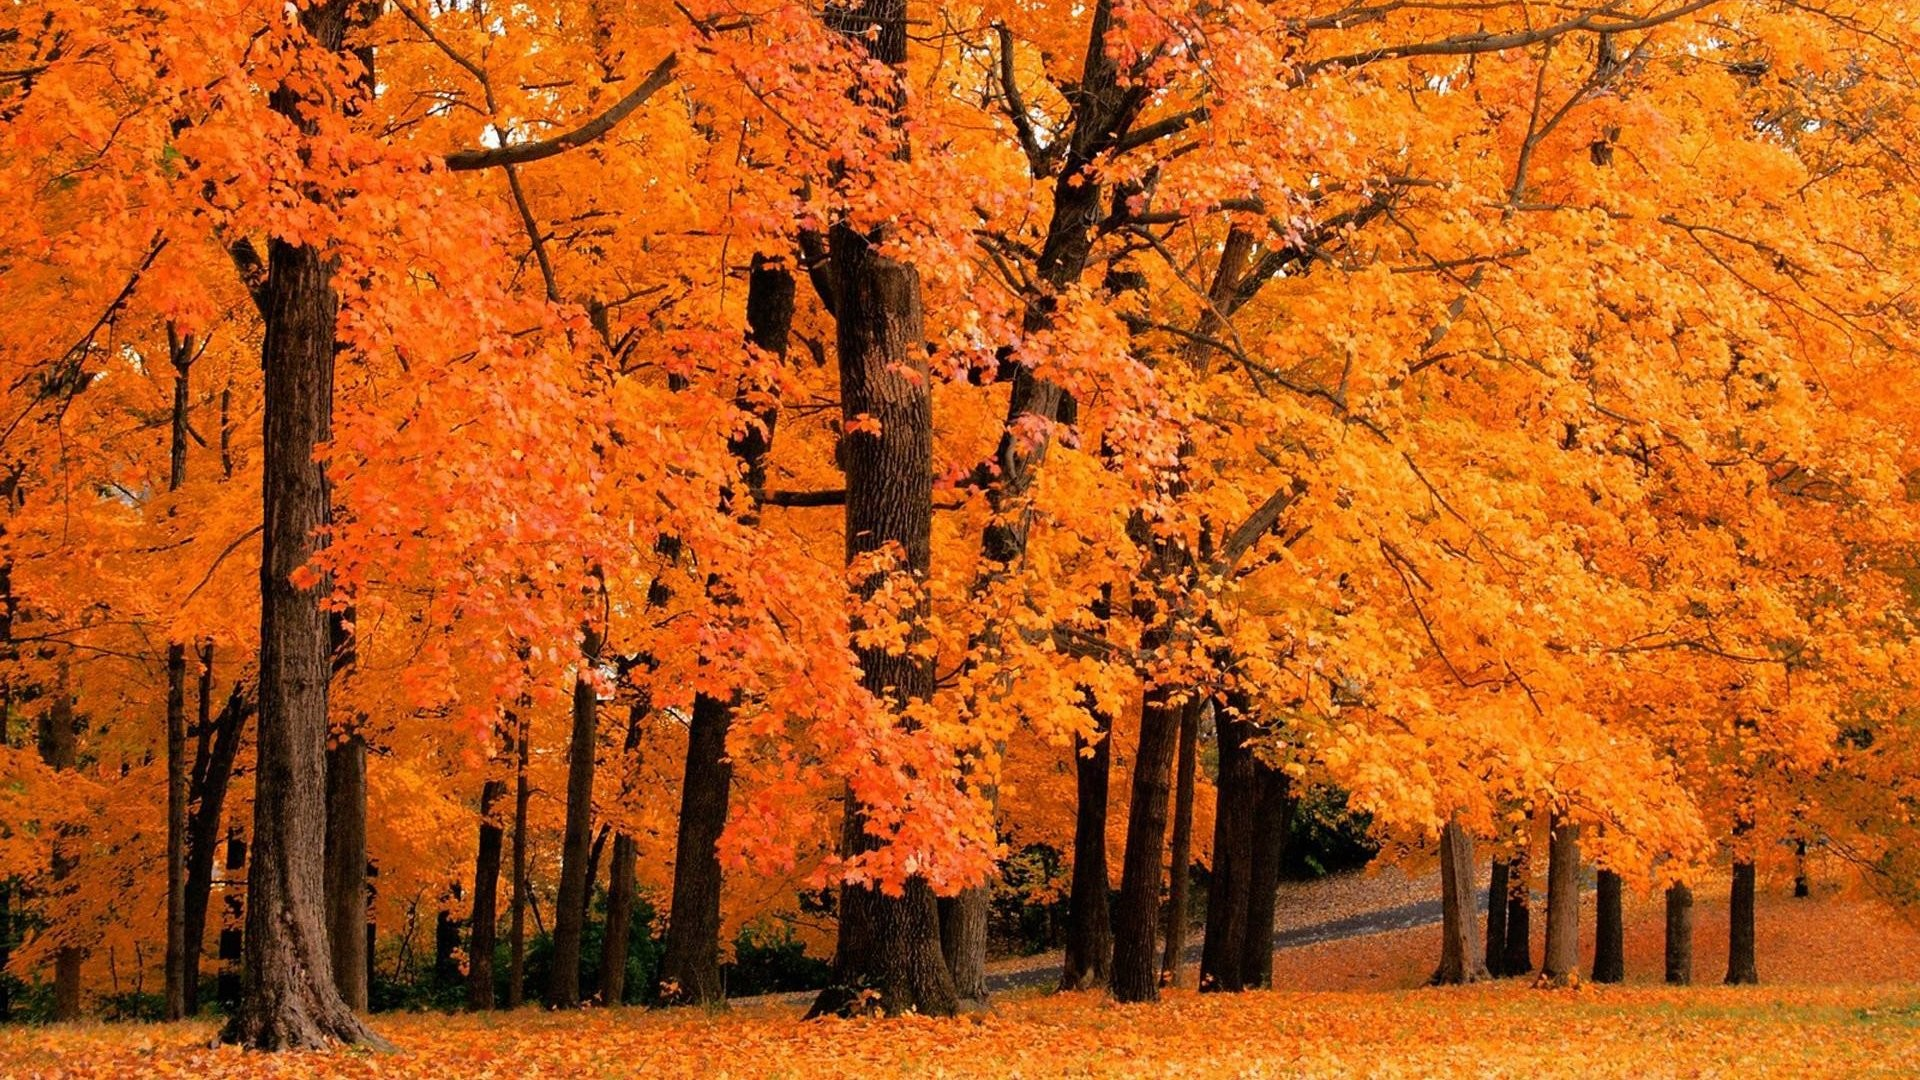 7013843-forest-autumn-trees.jpg